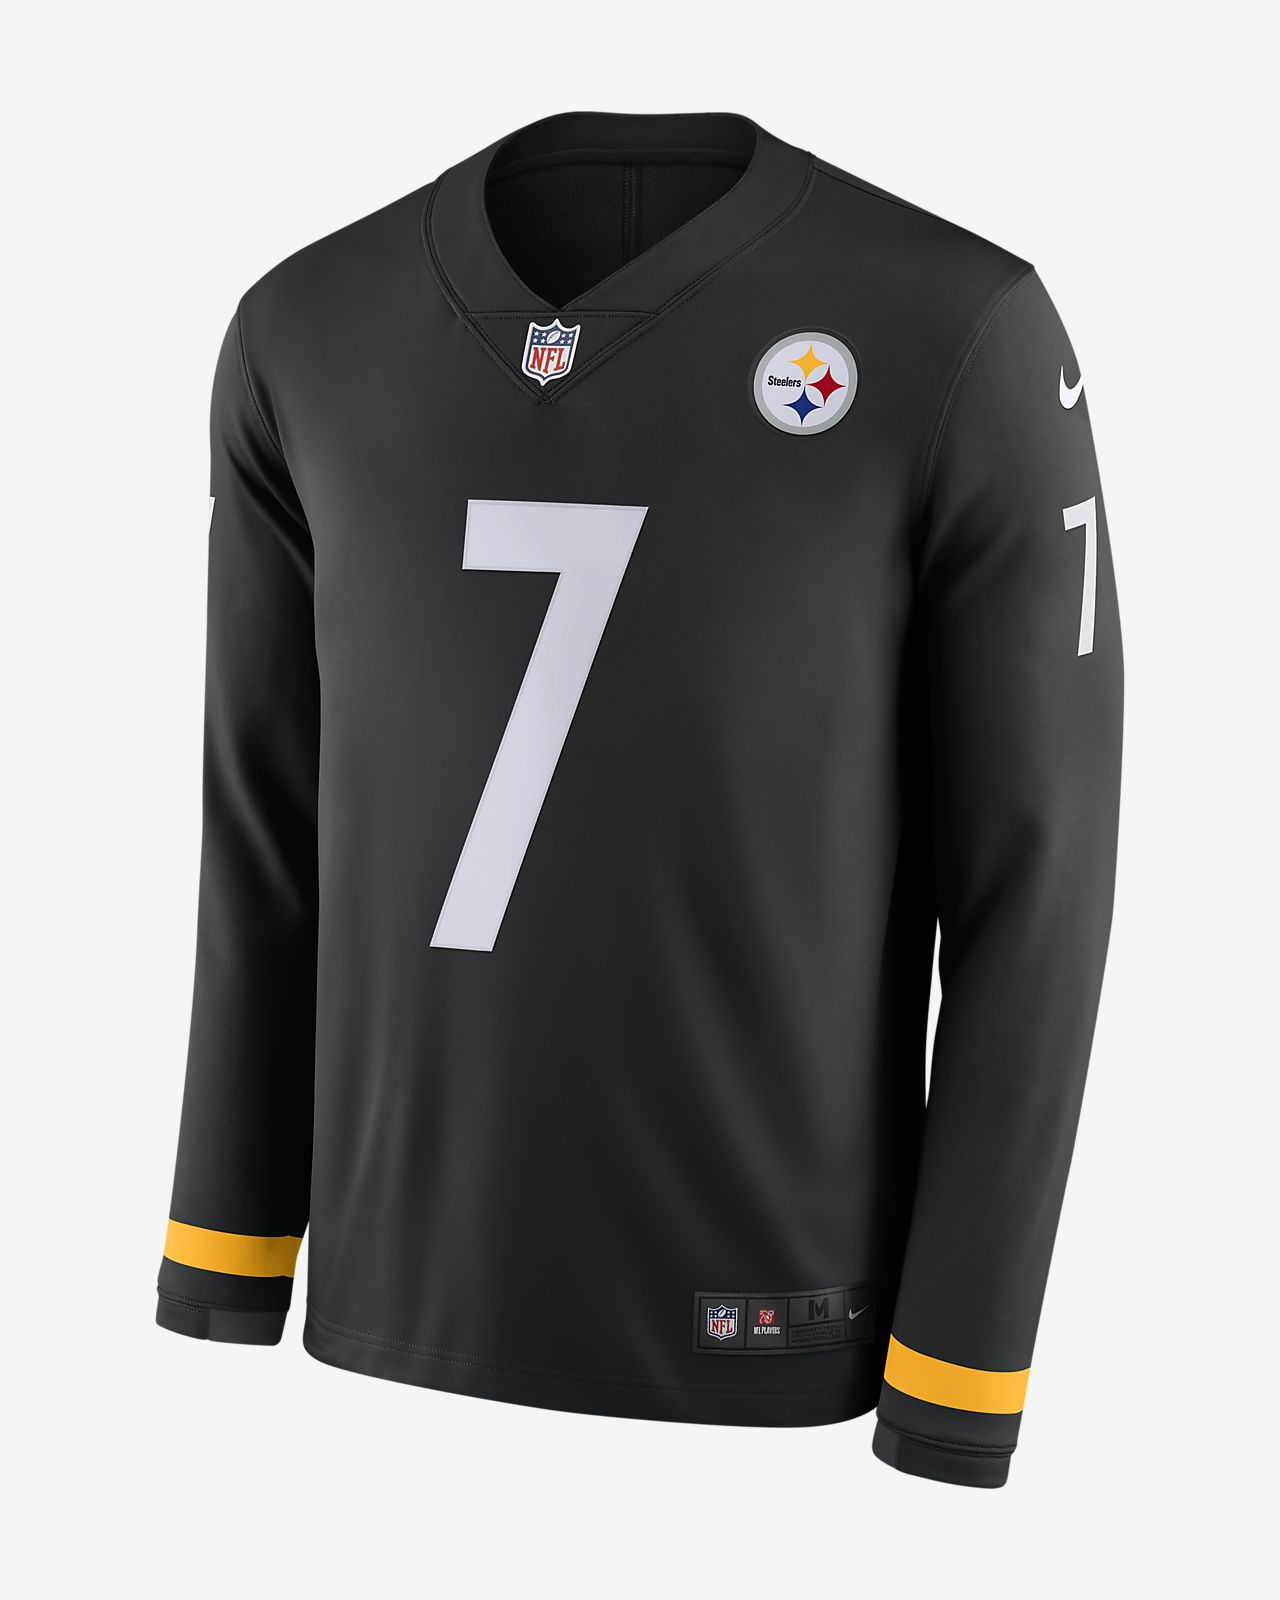 54d995a028e ... NFL Pittsburgh Steelers Jersey (Ben Roethlisberger) Men's Long-Sleeve  Football Jersey